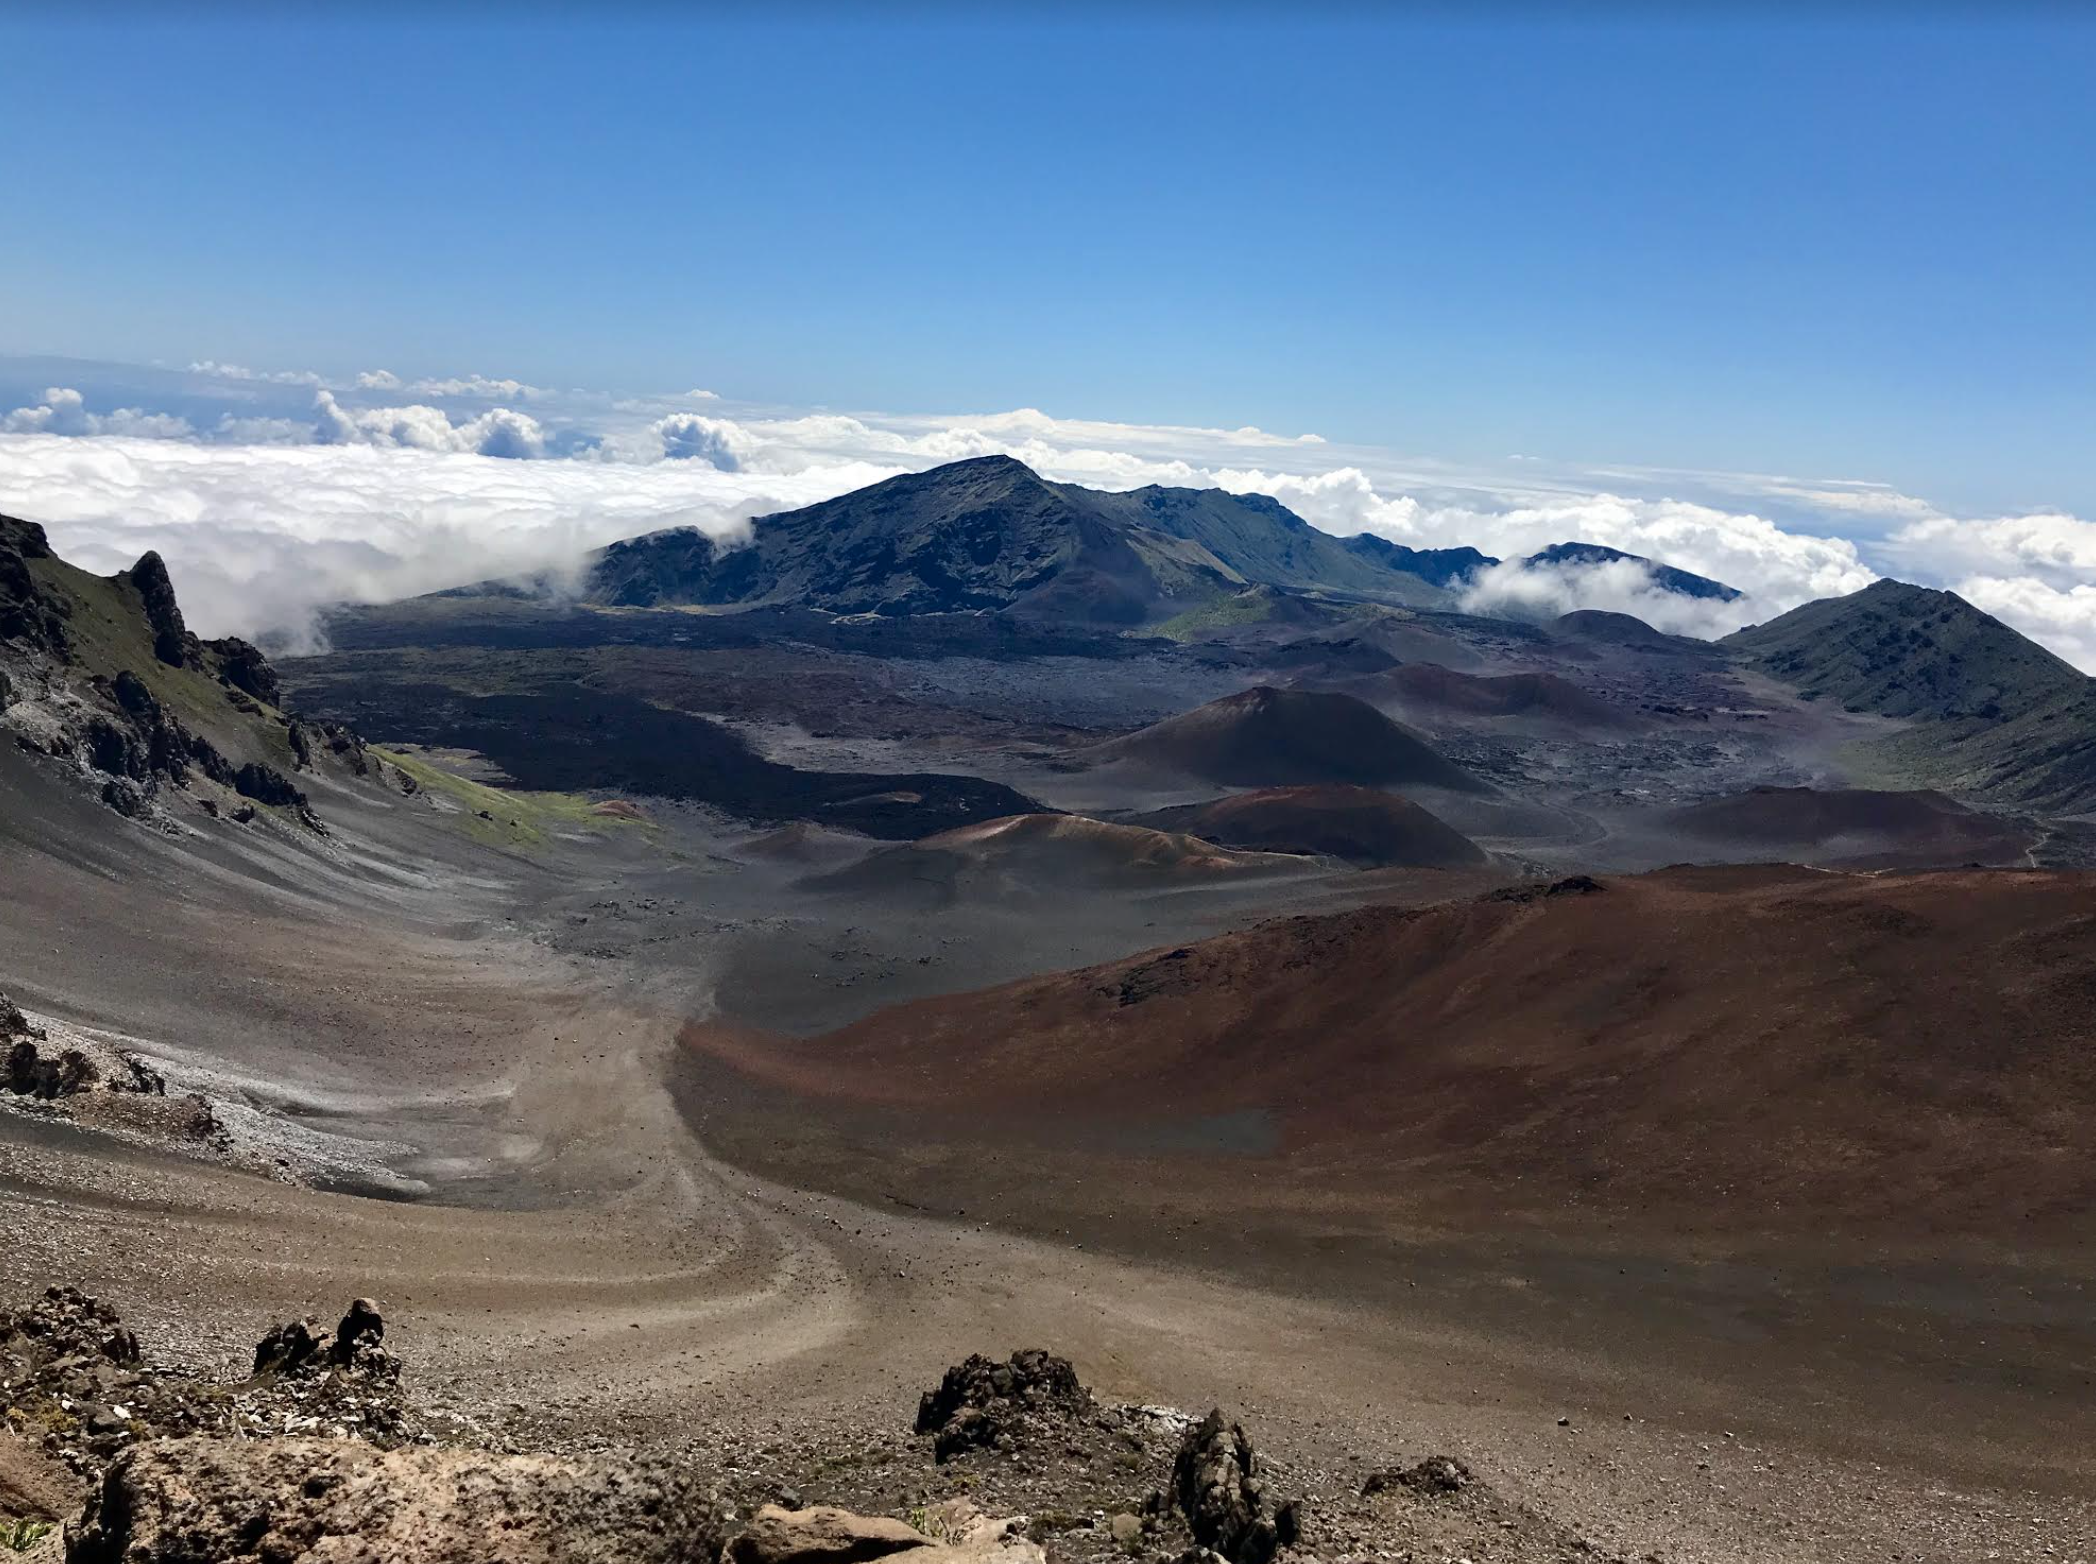 US House Committee Advances Measure to Expand Haleakalā National Park, Recover Endangered Birds